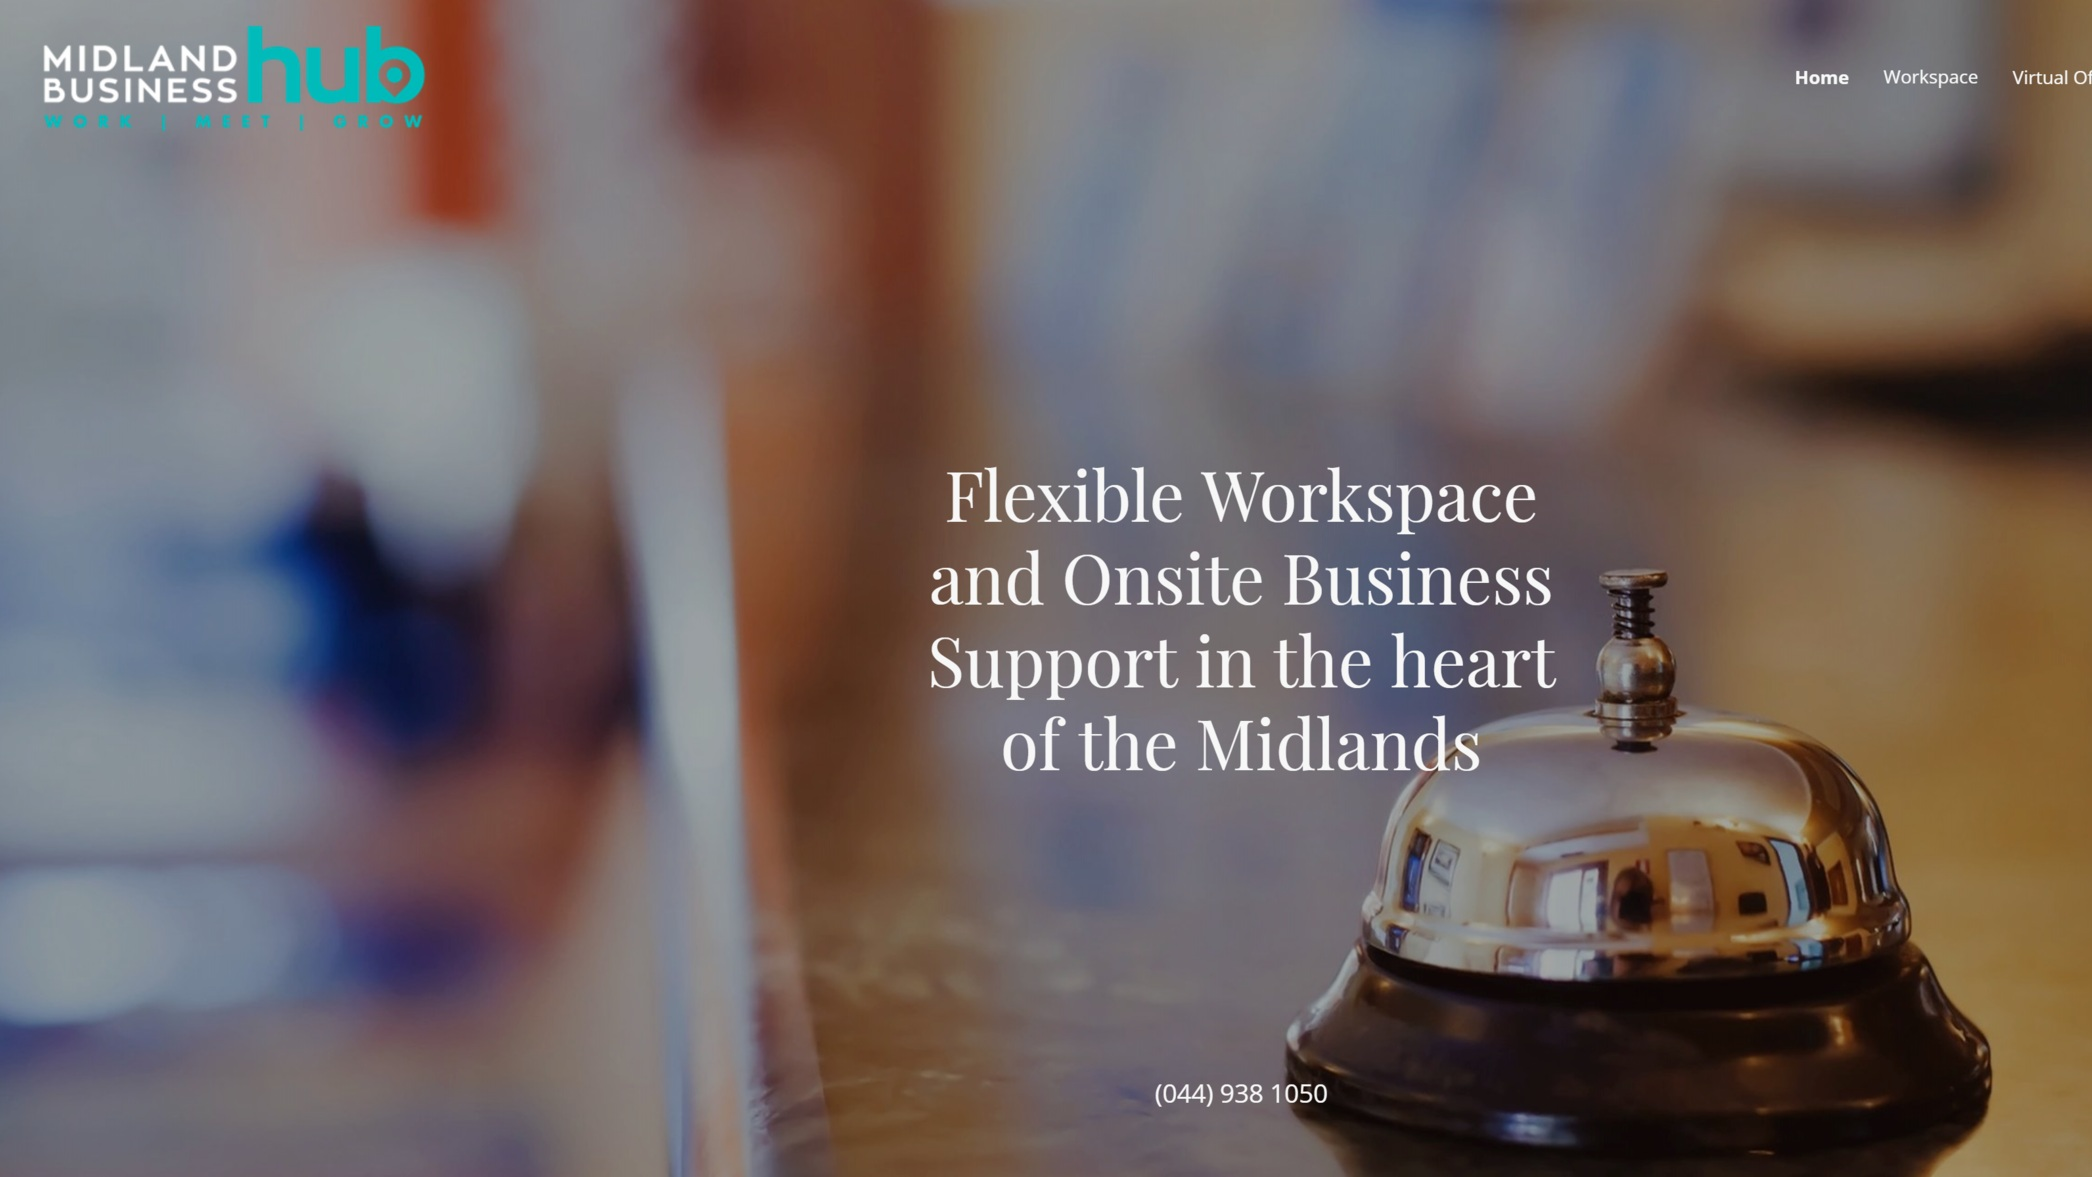 Mullingar - Midland Business Hub   Flexible Workspace and Onsite Business Support in the heart of the Midlands  QUICK CONTACT:  +353 (0) 44 938 1050   Click here for email